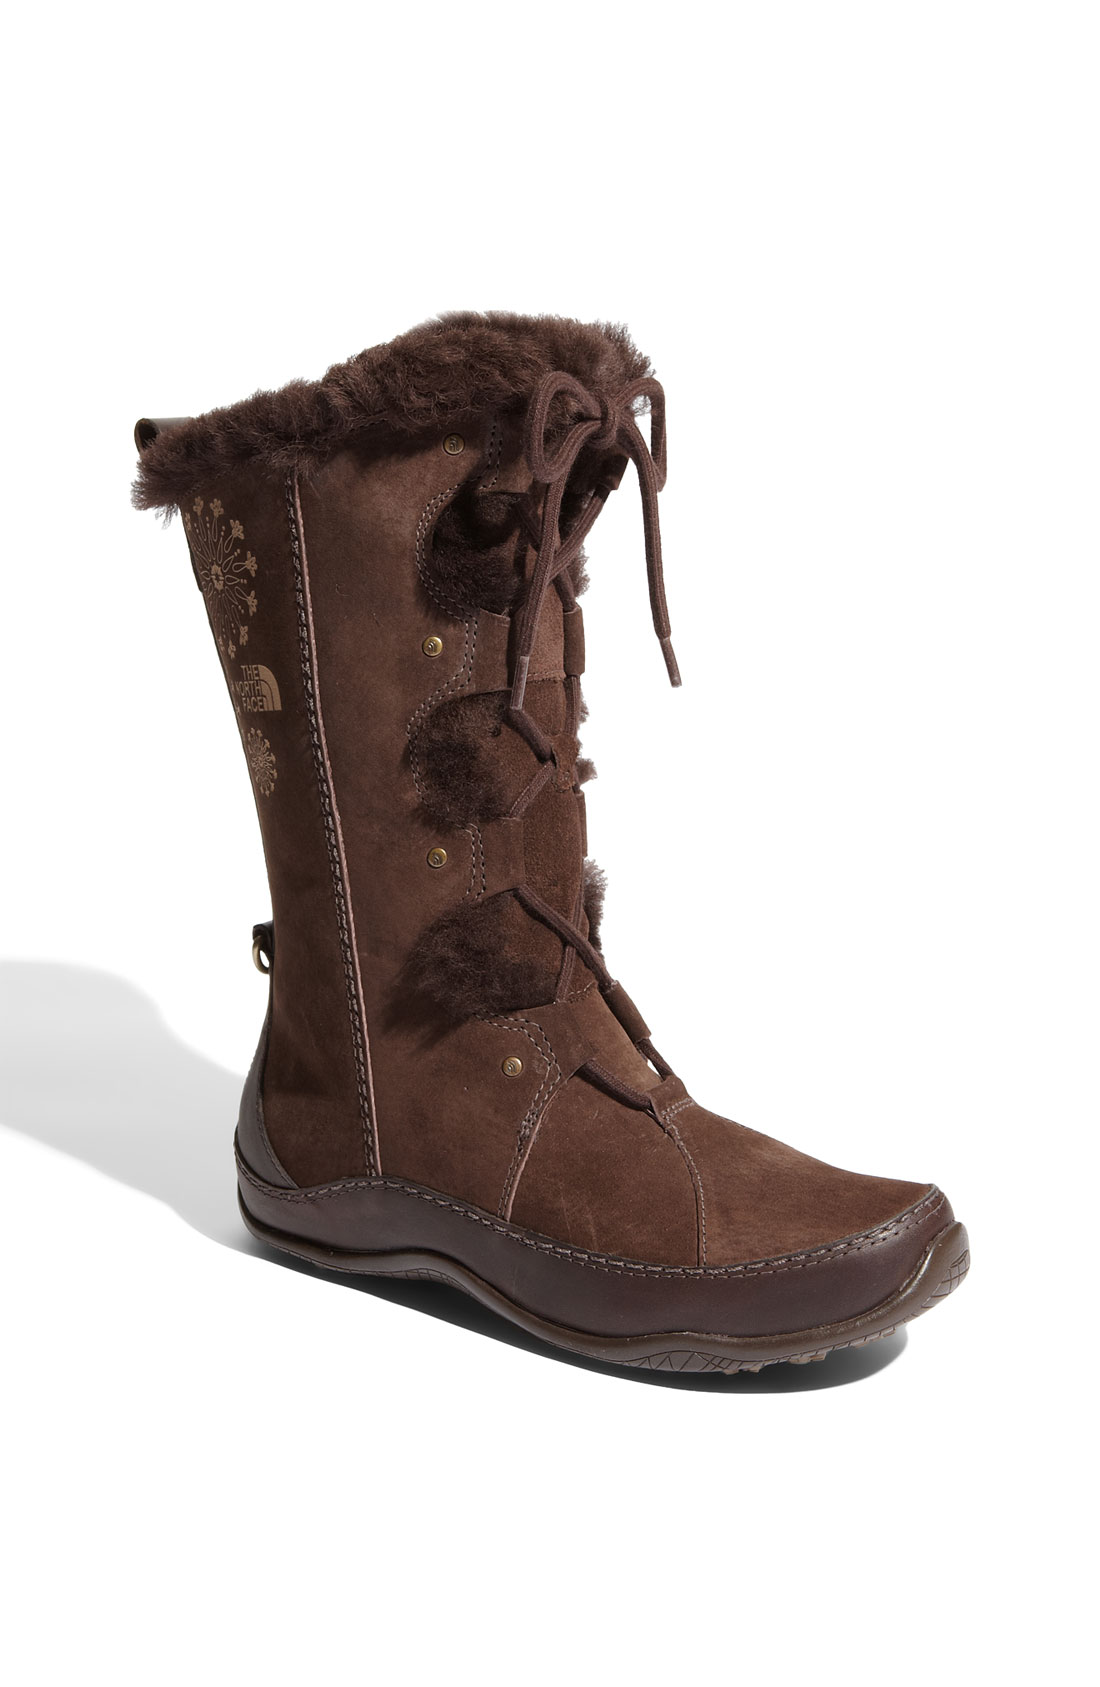 The North Face Abby Iii Boot In Brown Demitasse Brown